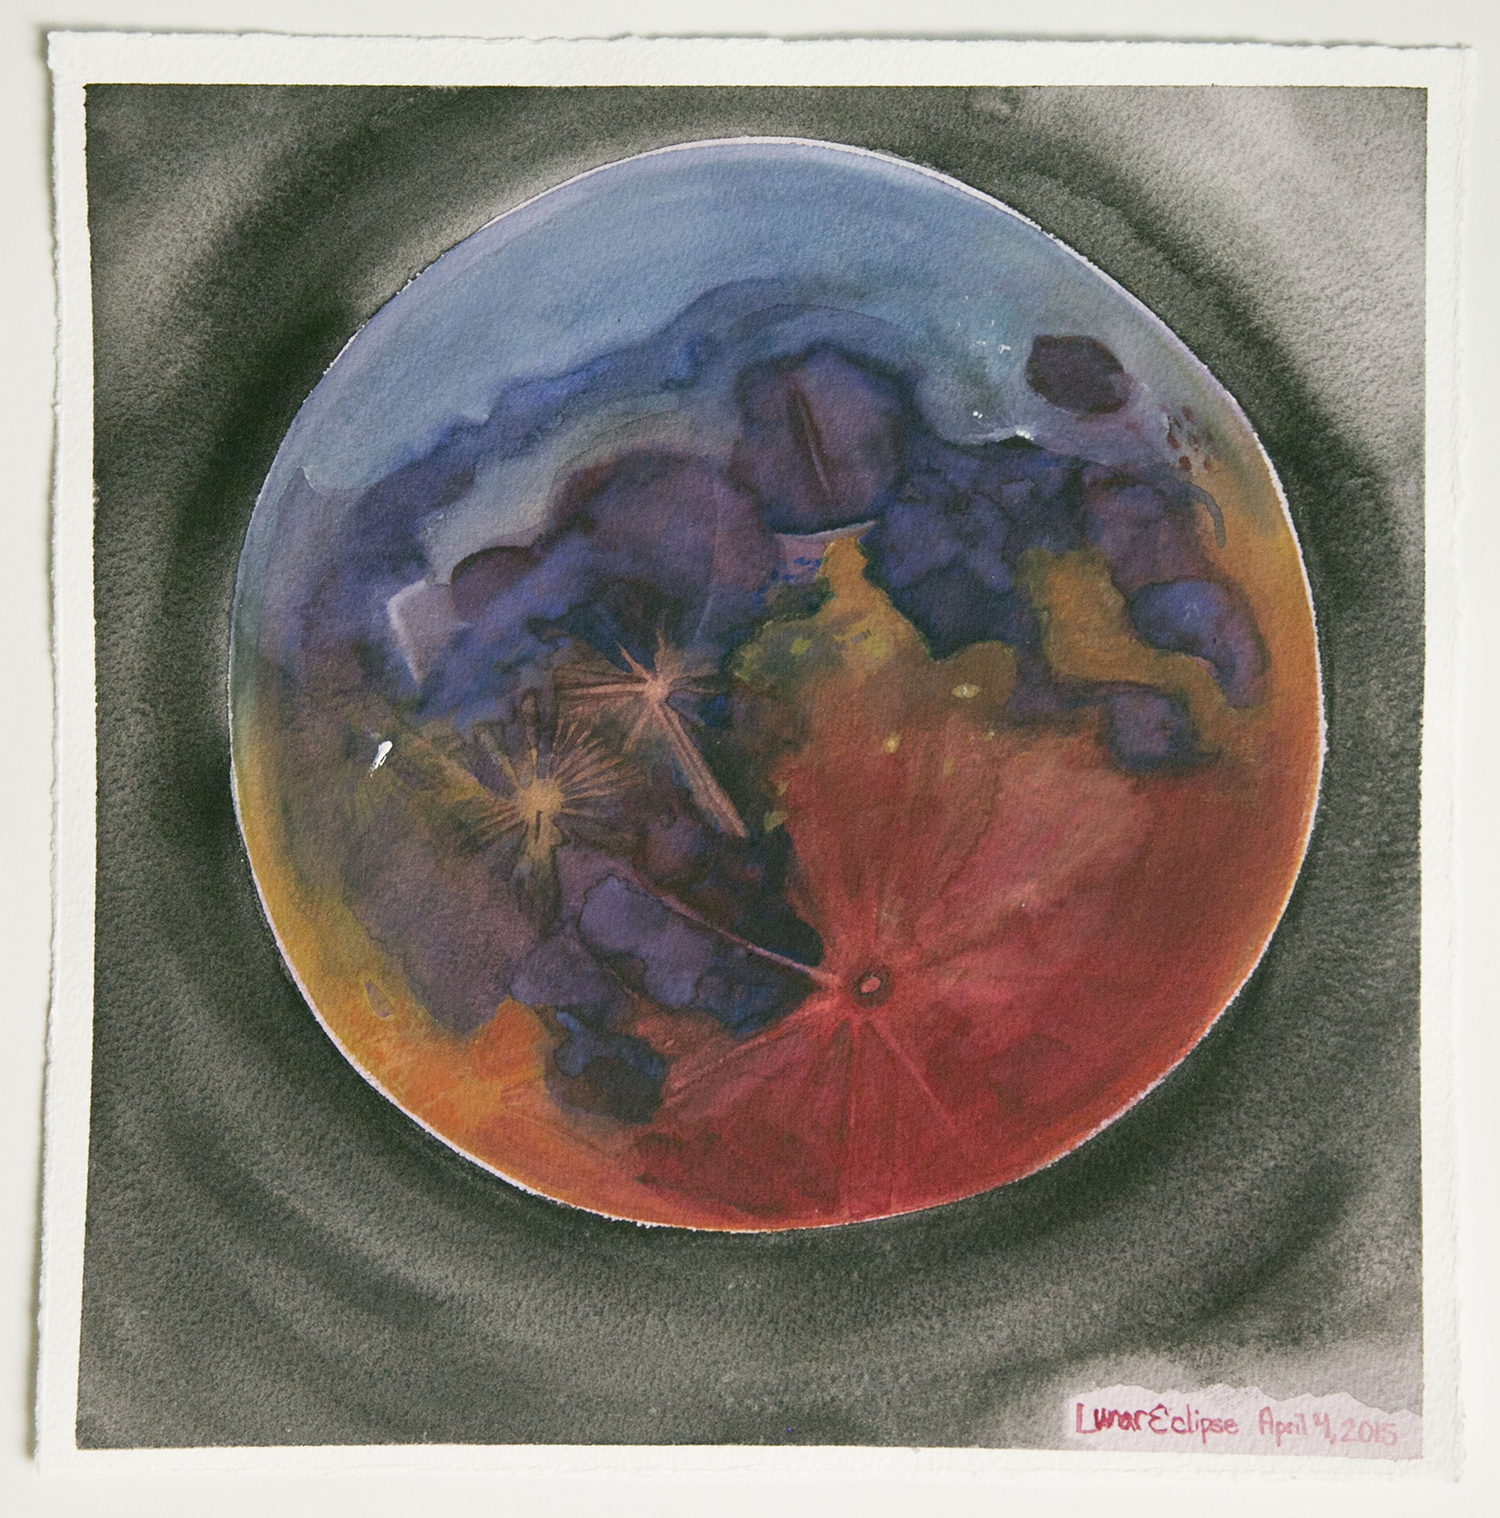 SF Lunar Eclipse April 4, 2015 (Lunar Eclipse from SF)  Japanese Watercolor on Paper  April 2015  10 inches by 10 inches